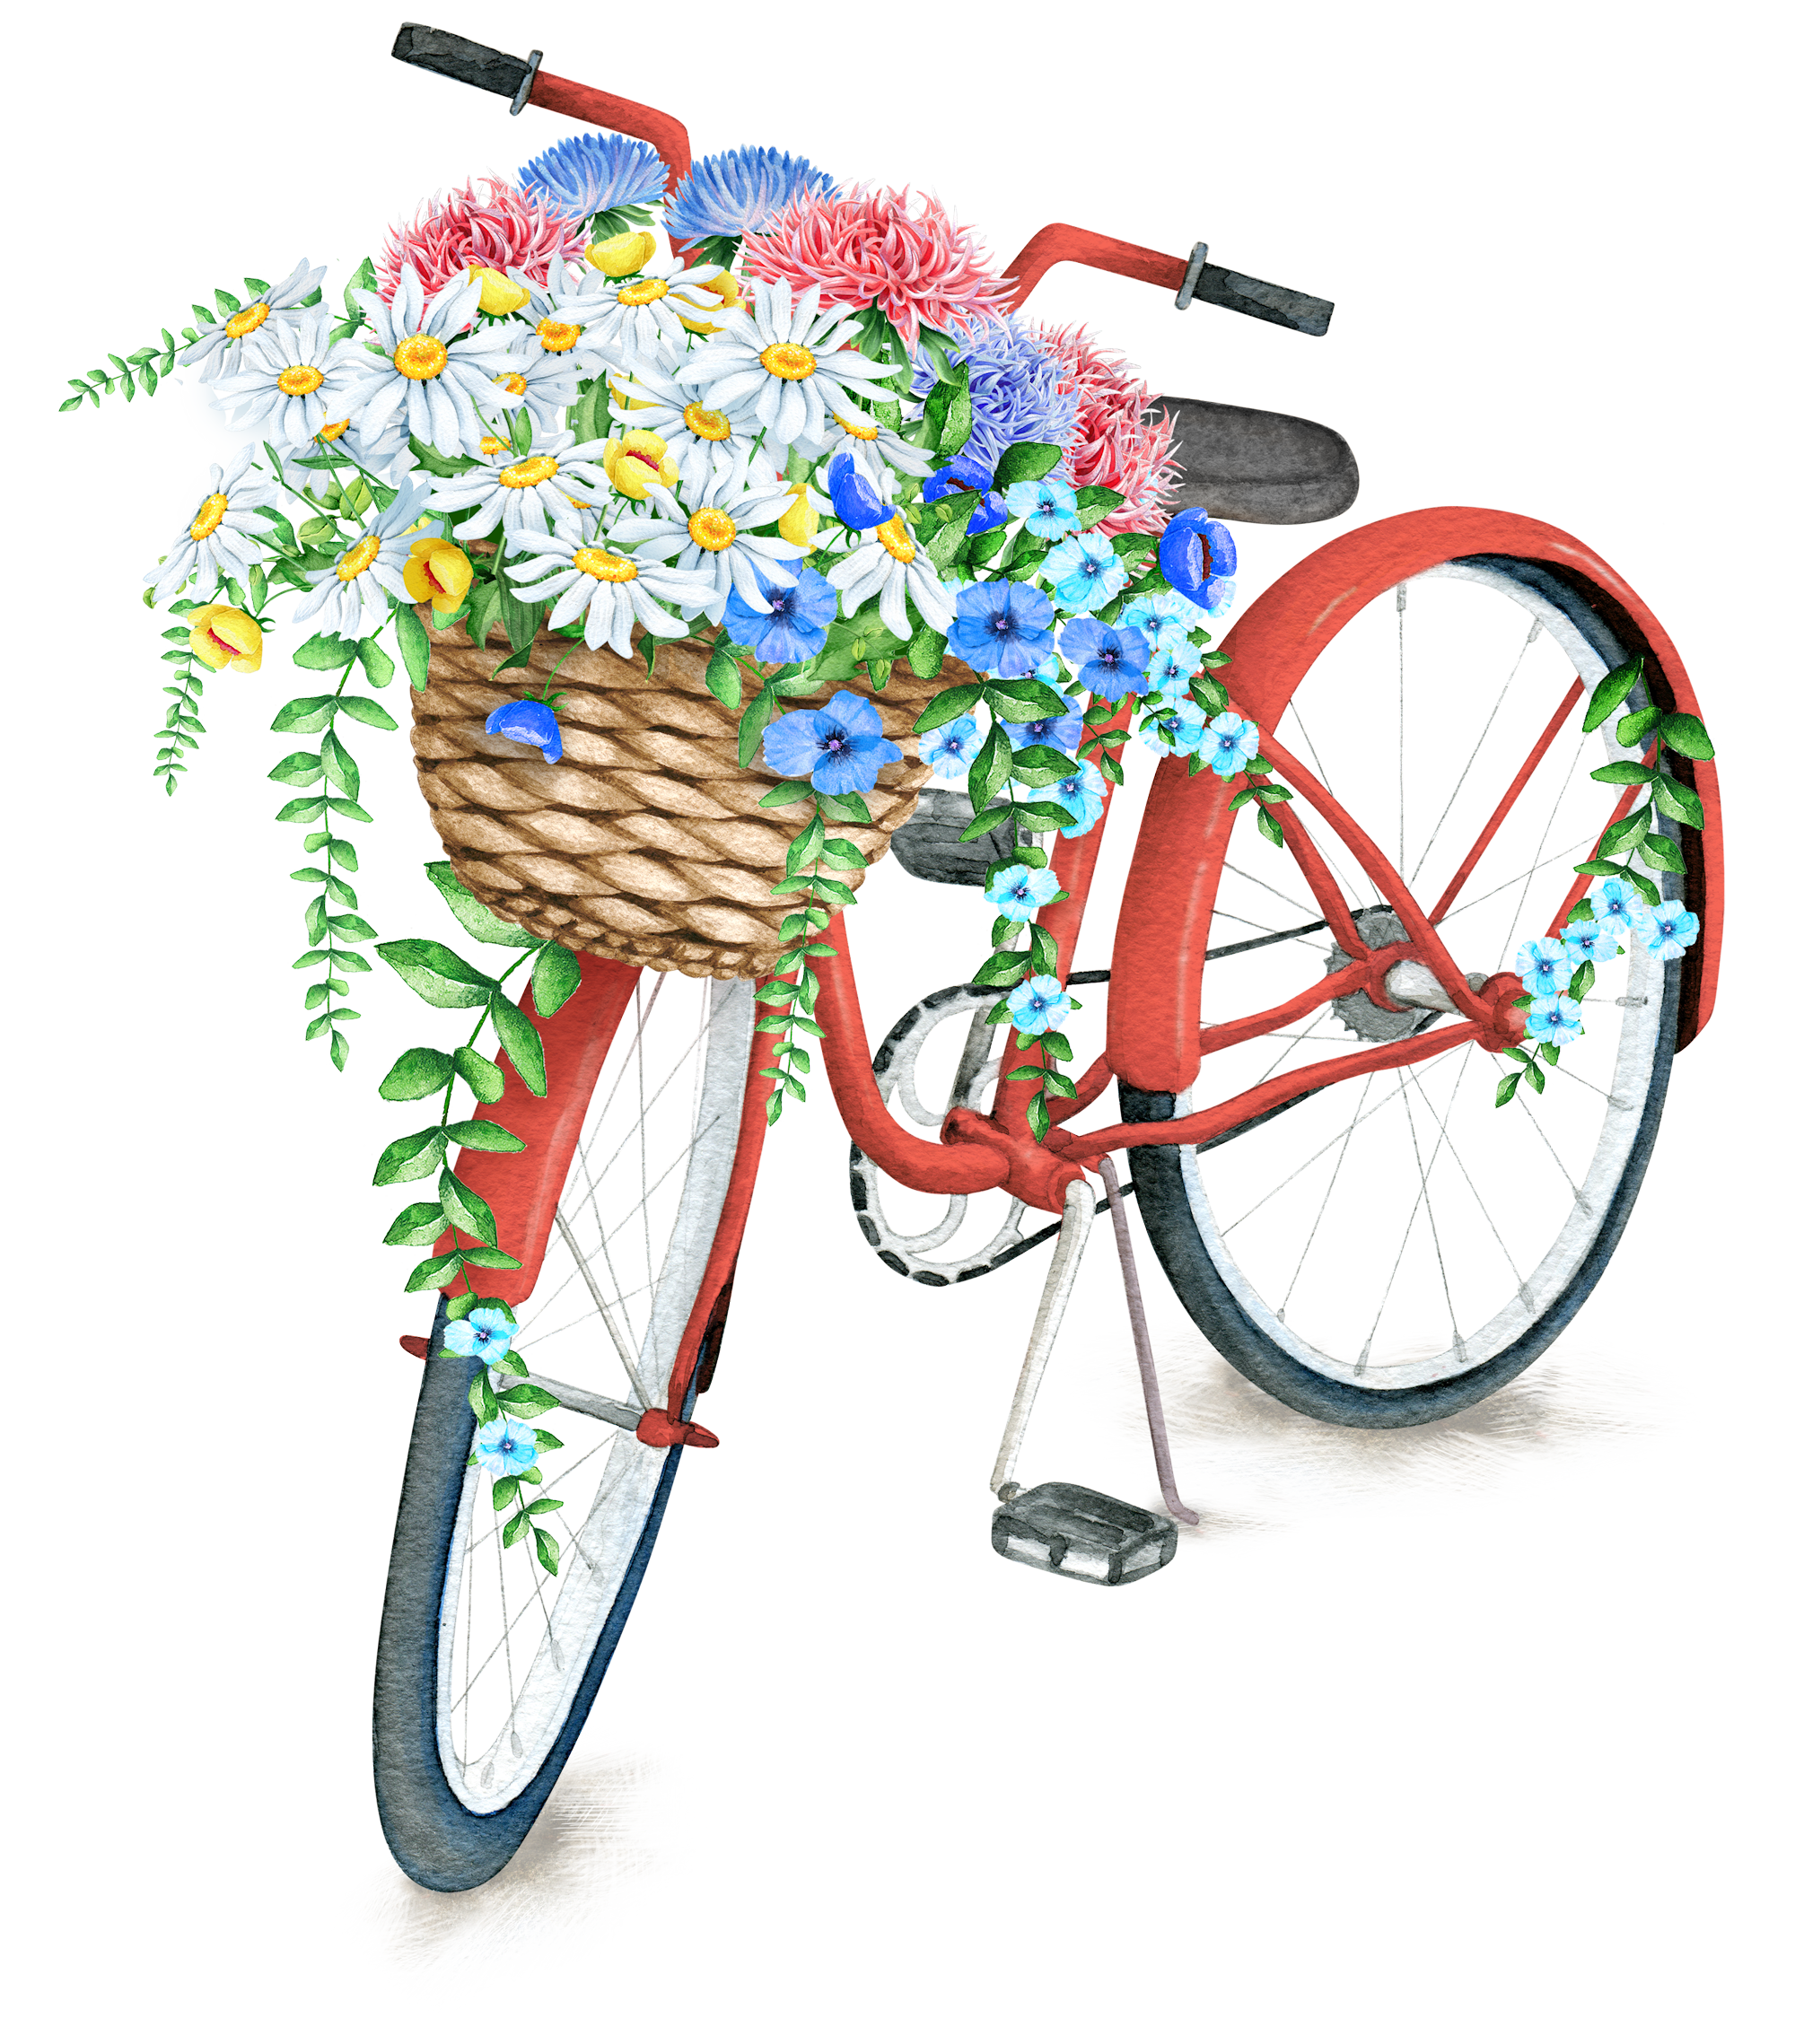 Bicycle with flower basket clipart image freeuse download Pin by Светлана on Картинки на белом фоне | Pinterest | Free collage ... image freeuse download